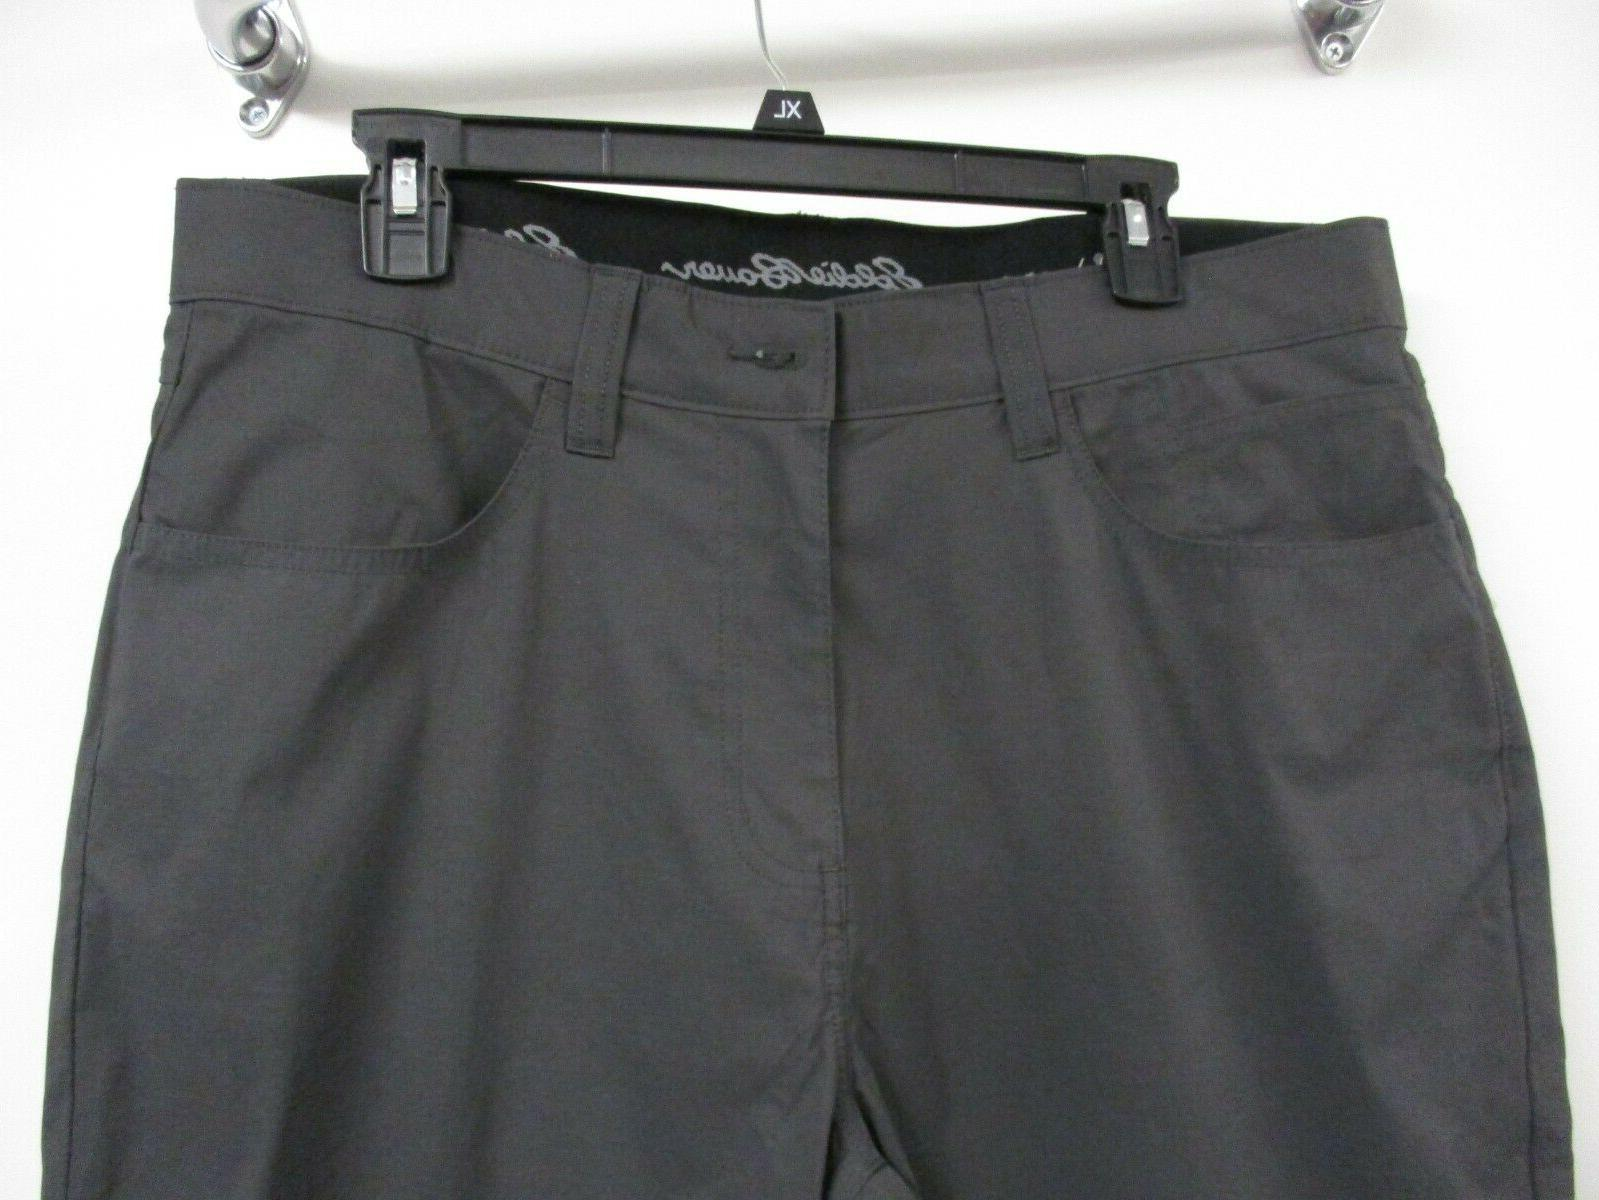 New without Tags- Bauer Men's Trek Pants 36 X in